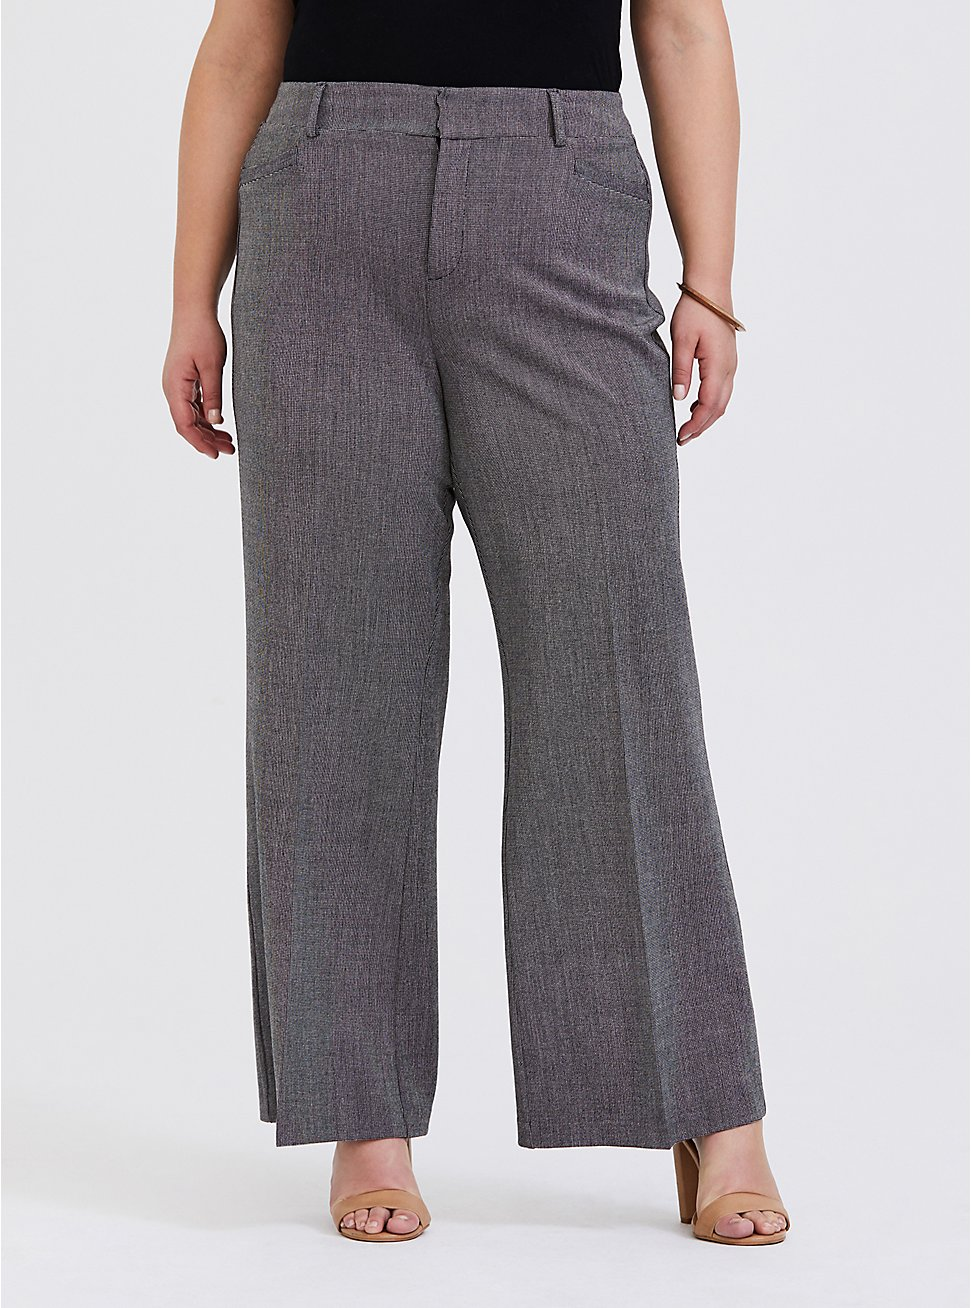 Grey Textured Structured Wide Leg Pant, GREY, hi-res